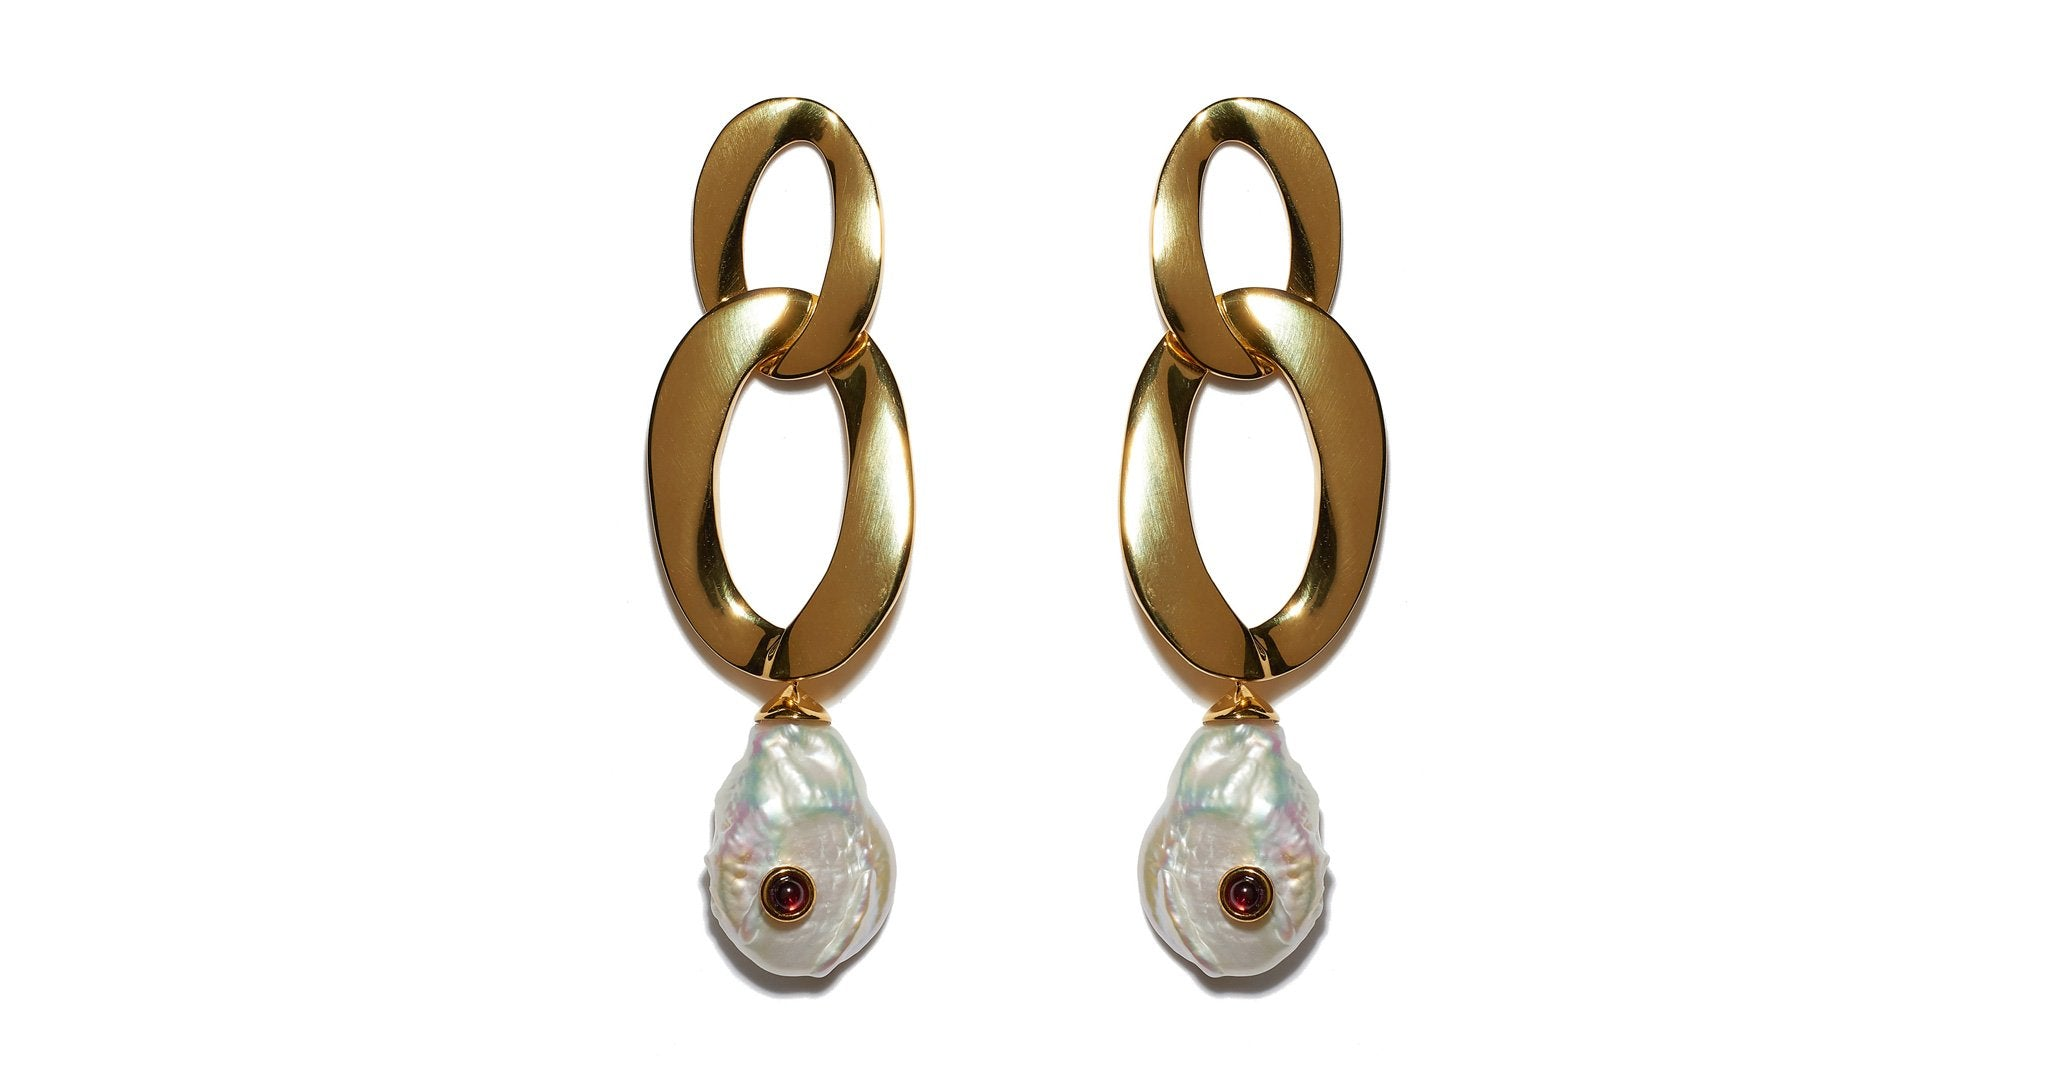 Lizzie Fortunato Basilicata Earrings